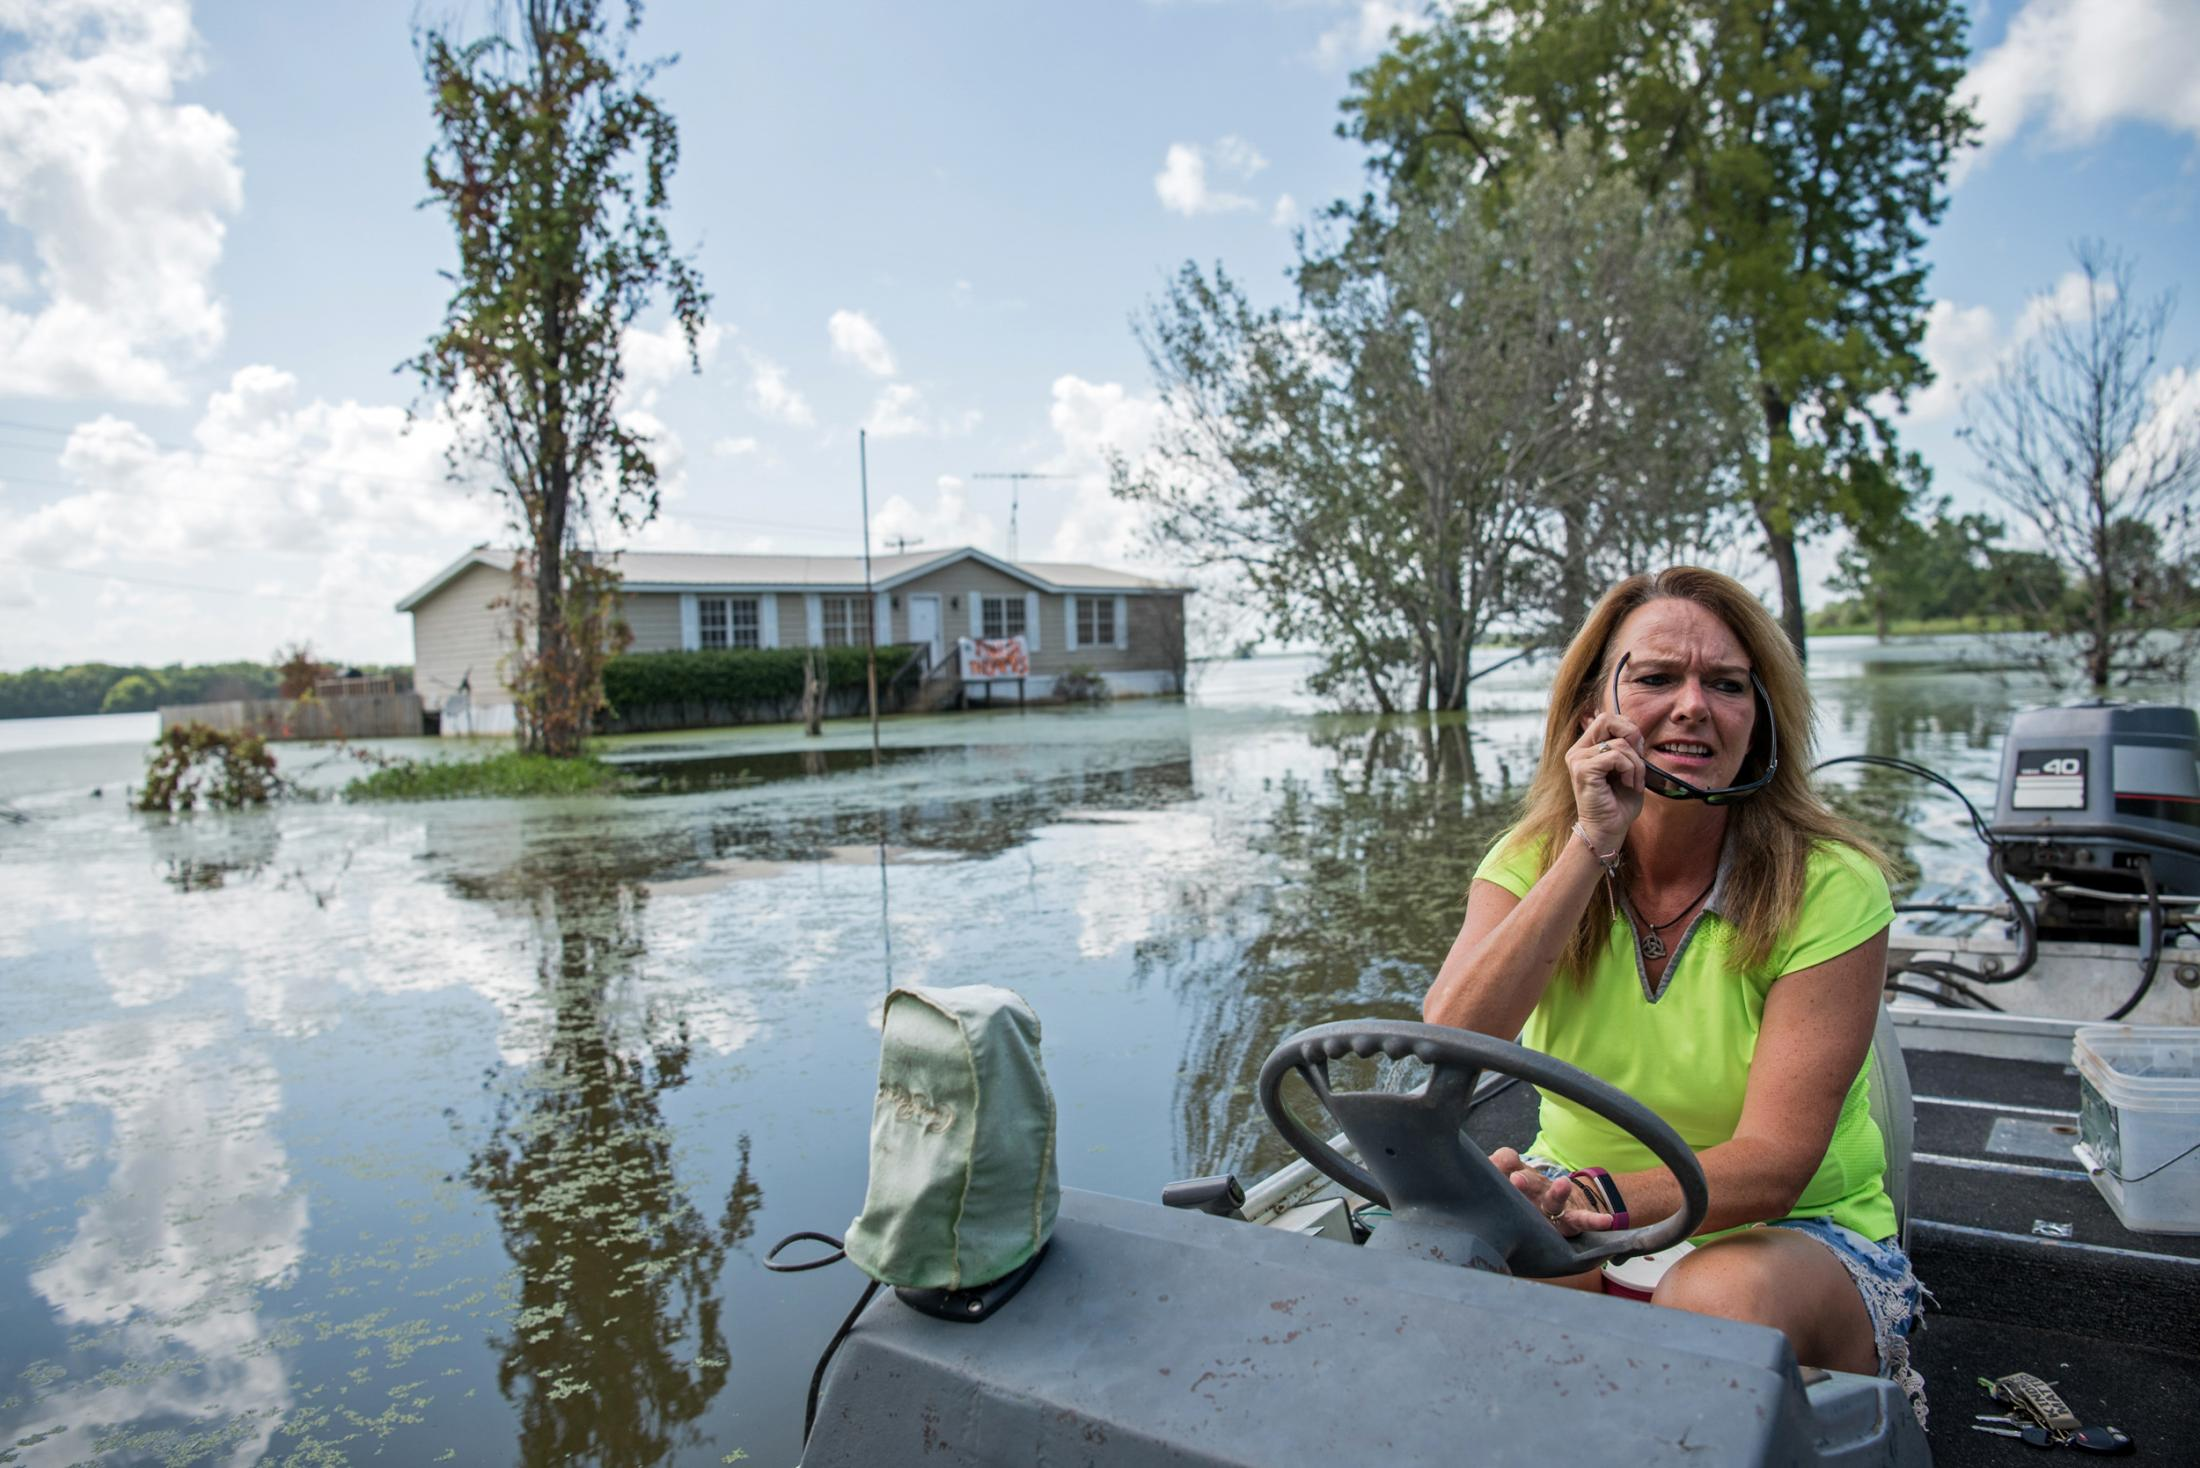 "Stormy Deere boats outside her home in Warren County, Mississippi on July 16, 2019. Deere's home was built high enough that it didn't succumb to the floodwater, but she did have to boat in and out of her property beginning in March. ""The isolation is tough,"" said Deere. ""It's such a pain having to boat where I use to drive. The emotional effect is awful. You think you'll see the light of day when the water drops a little, and then it pops right back up again. It's really hard. This isn't fair — just because we have a lower population, and we have a lower income per household, we still matter. We should be treated equally."" Photo by Rory Doyle for The Guardian."